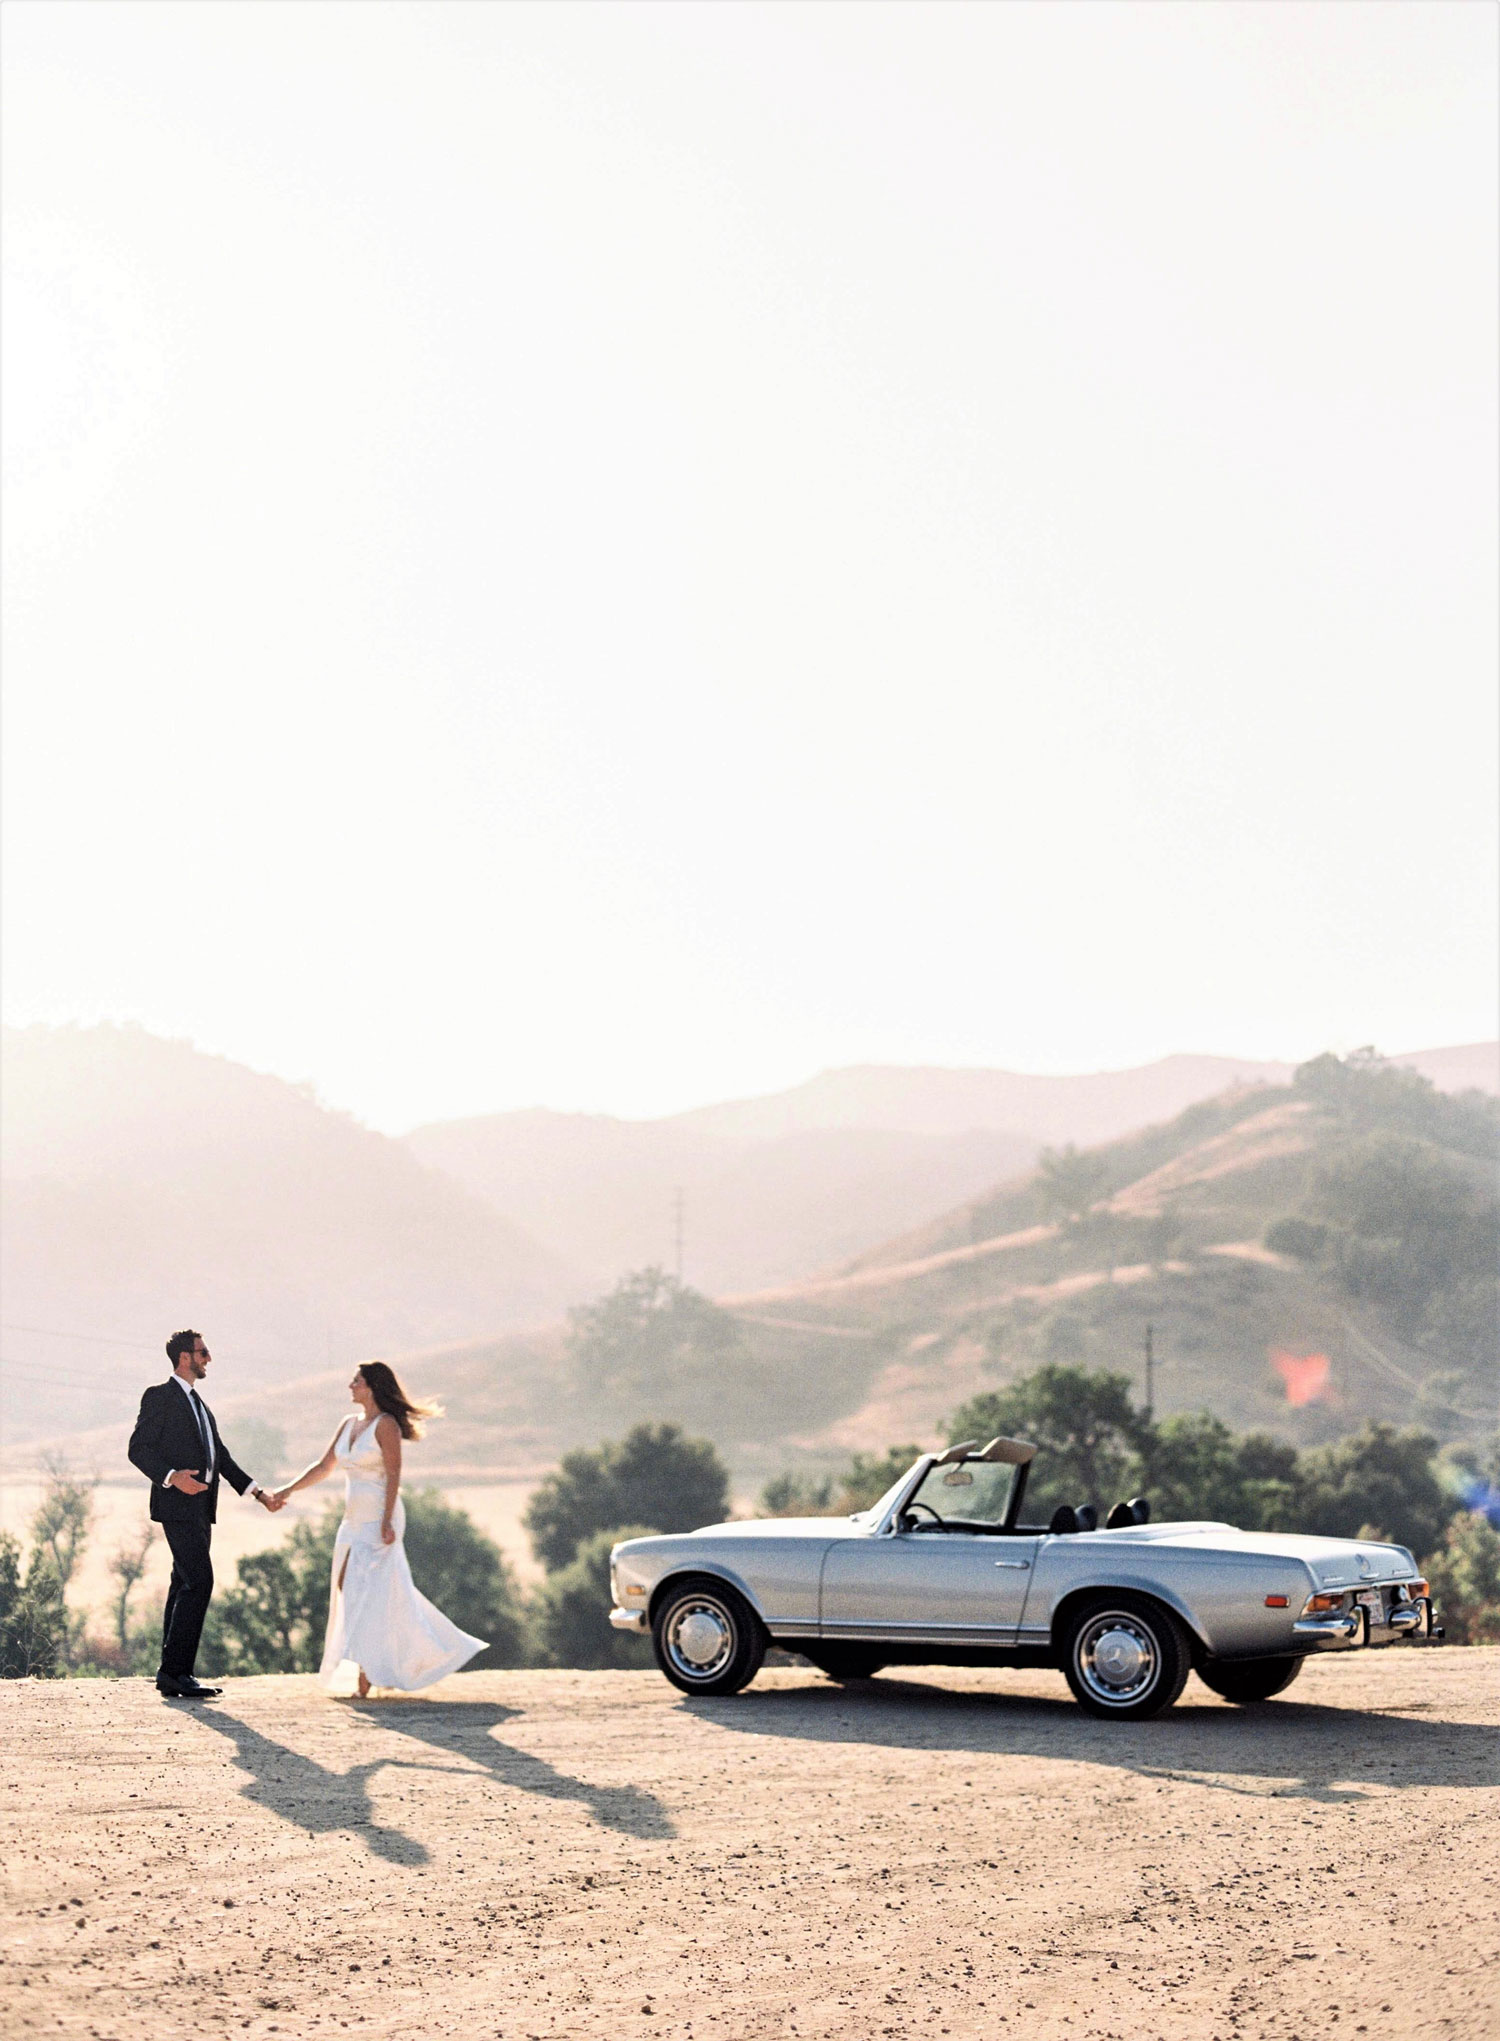 Engagement shoot photo ideas malibu classic car vintage mustang convertible